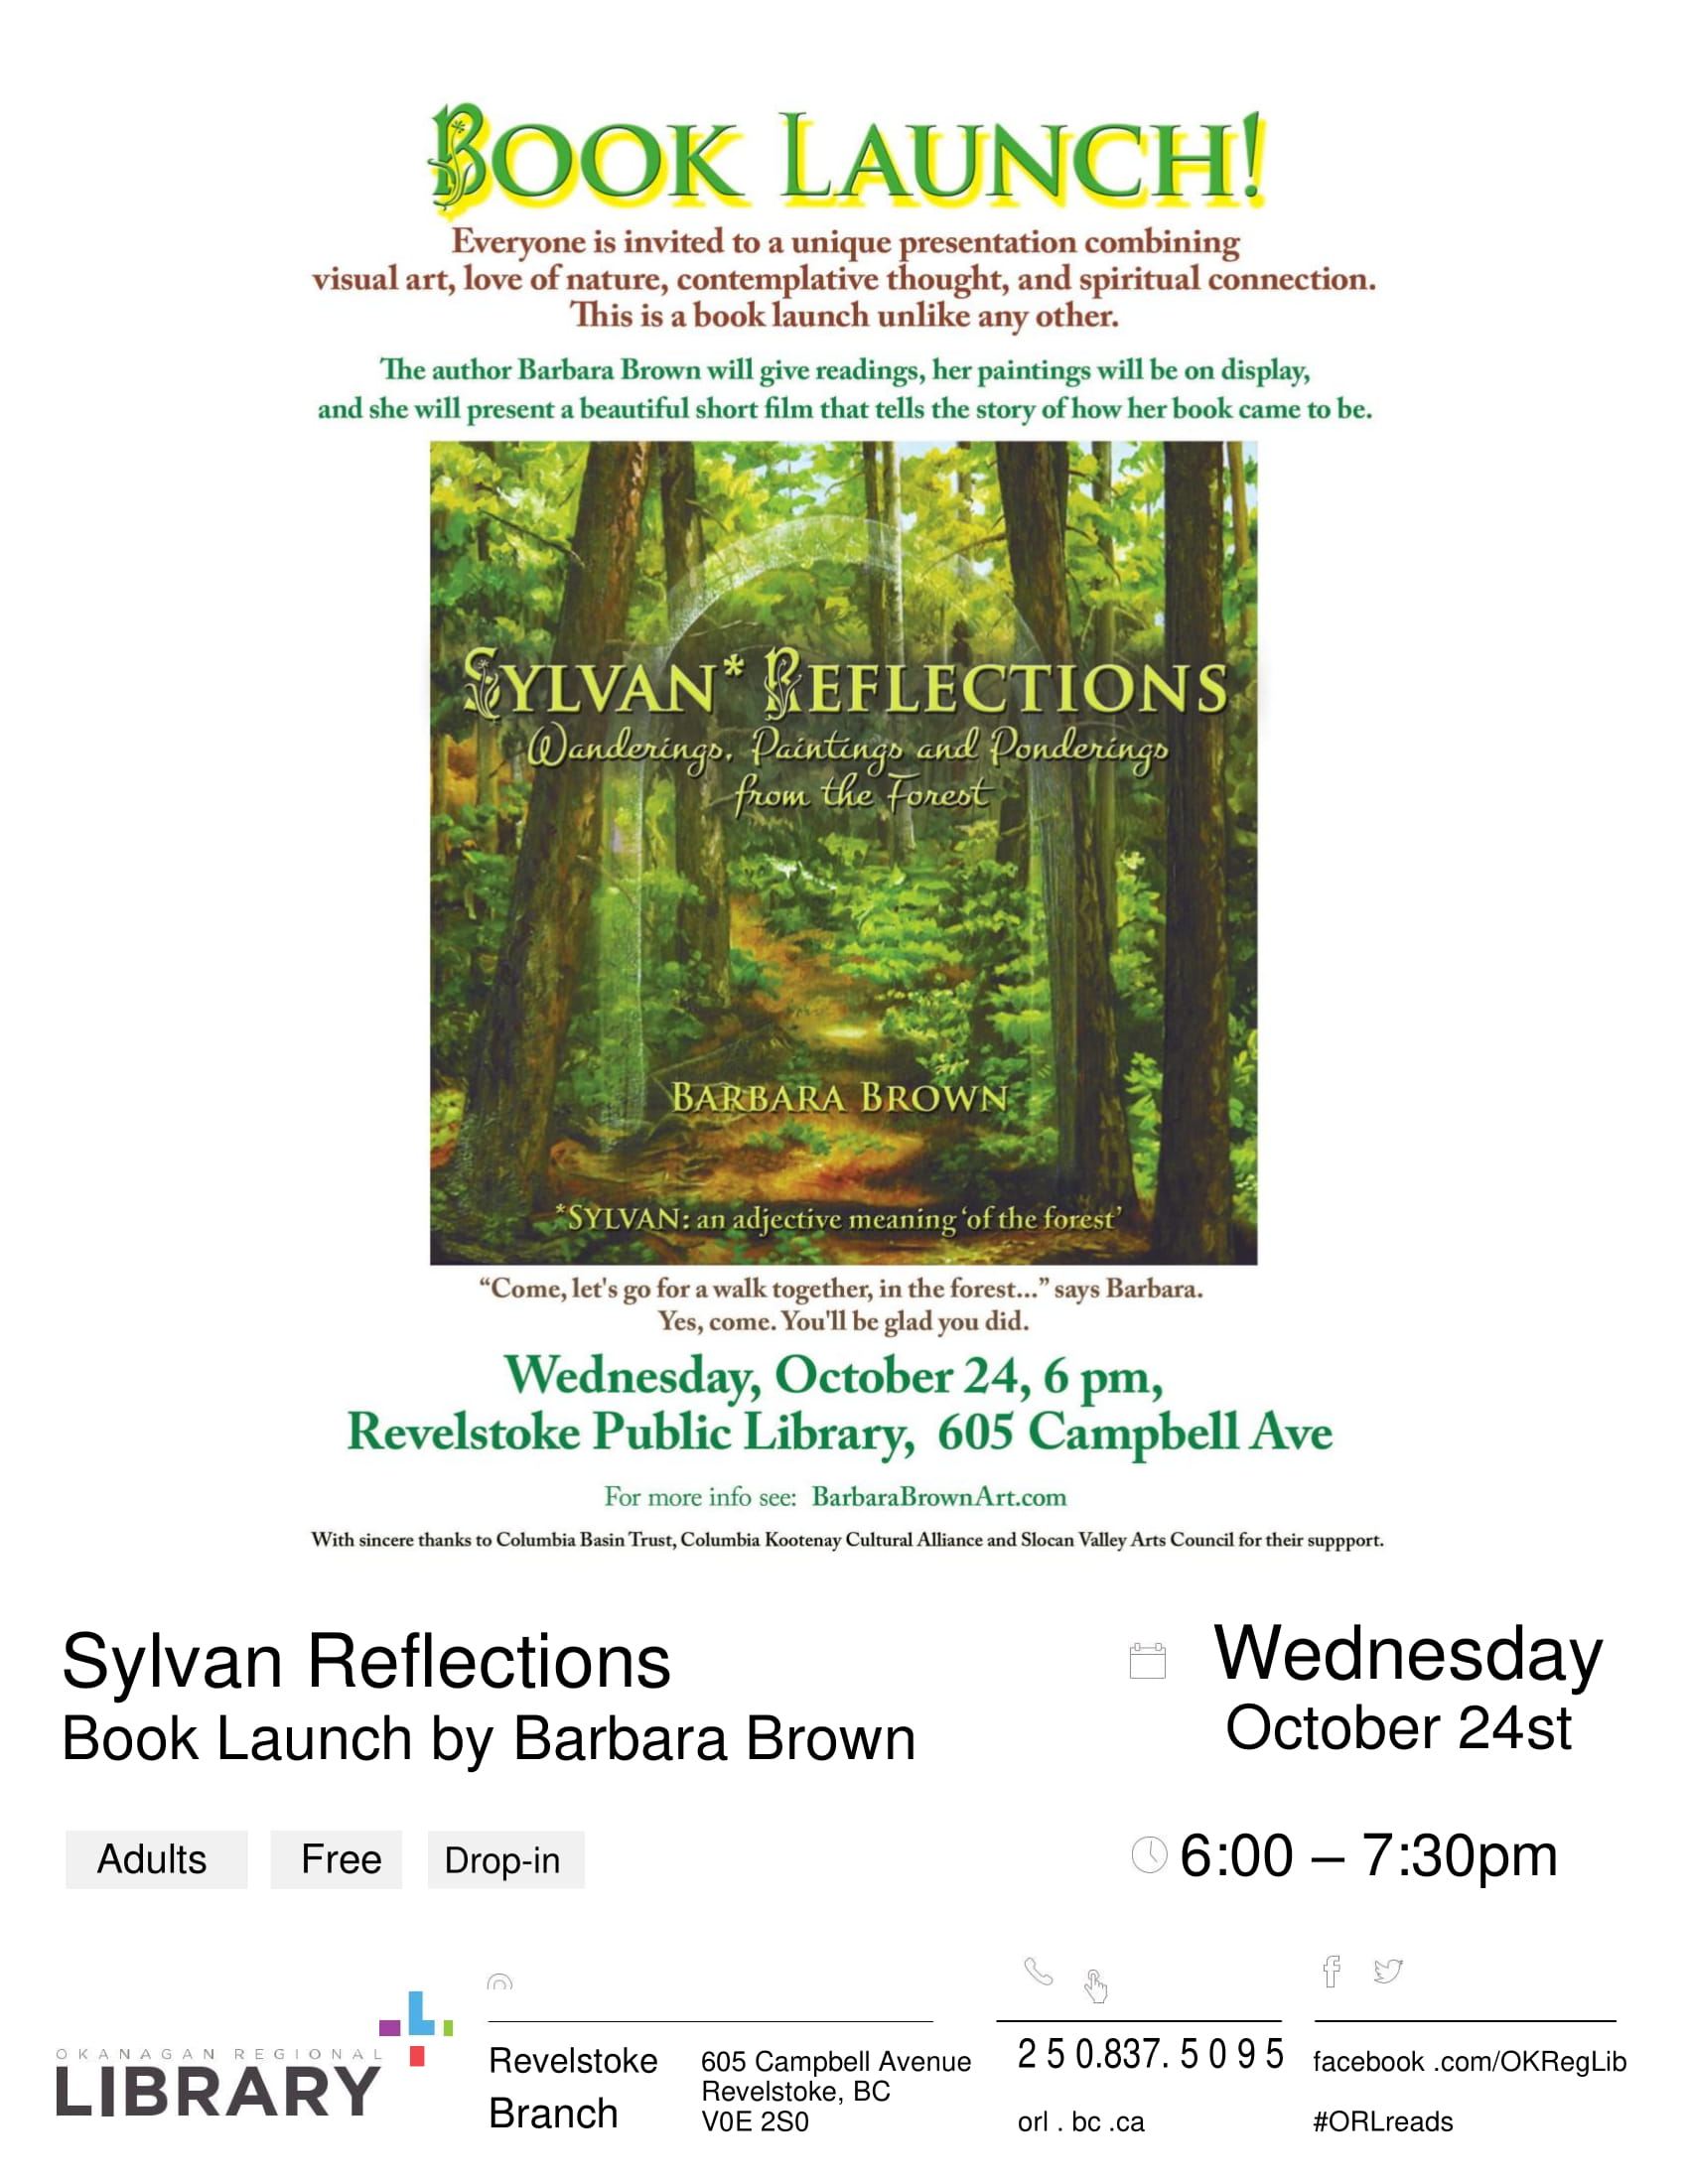 Book Launch - Author Barbara Brown @ Revelsoke Branch Library |  |  |